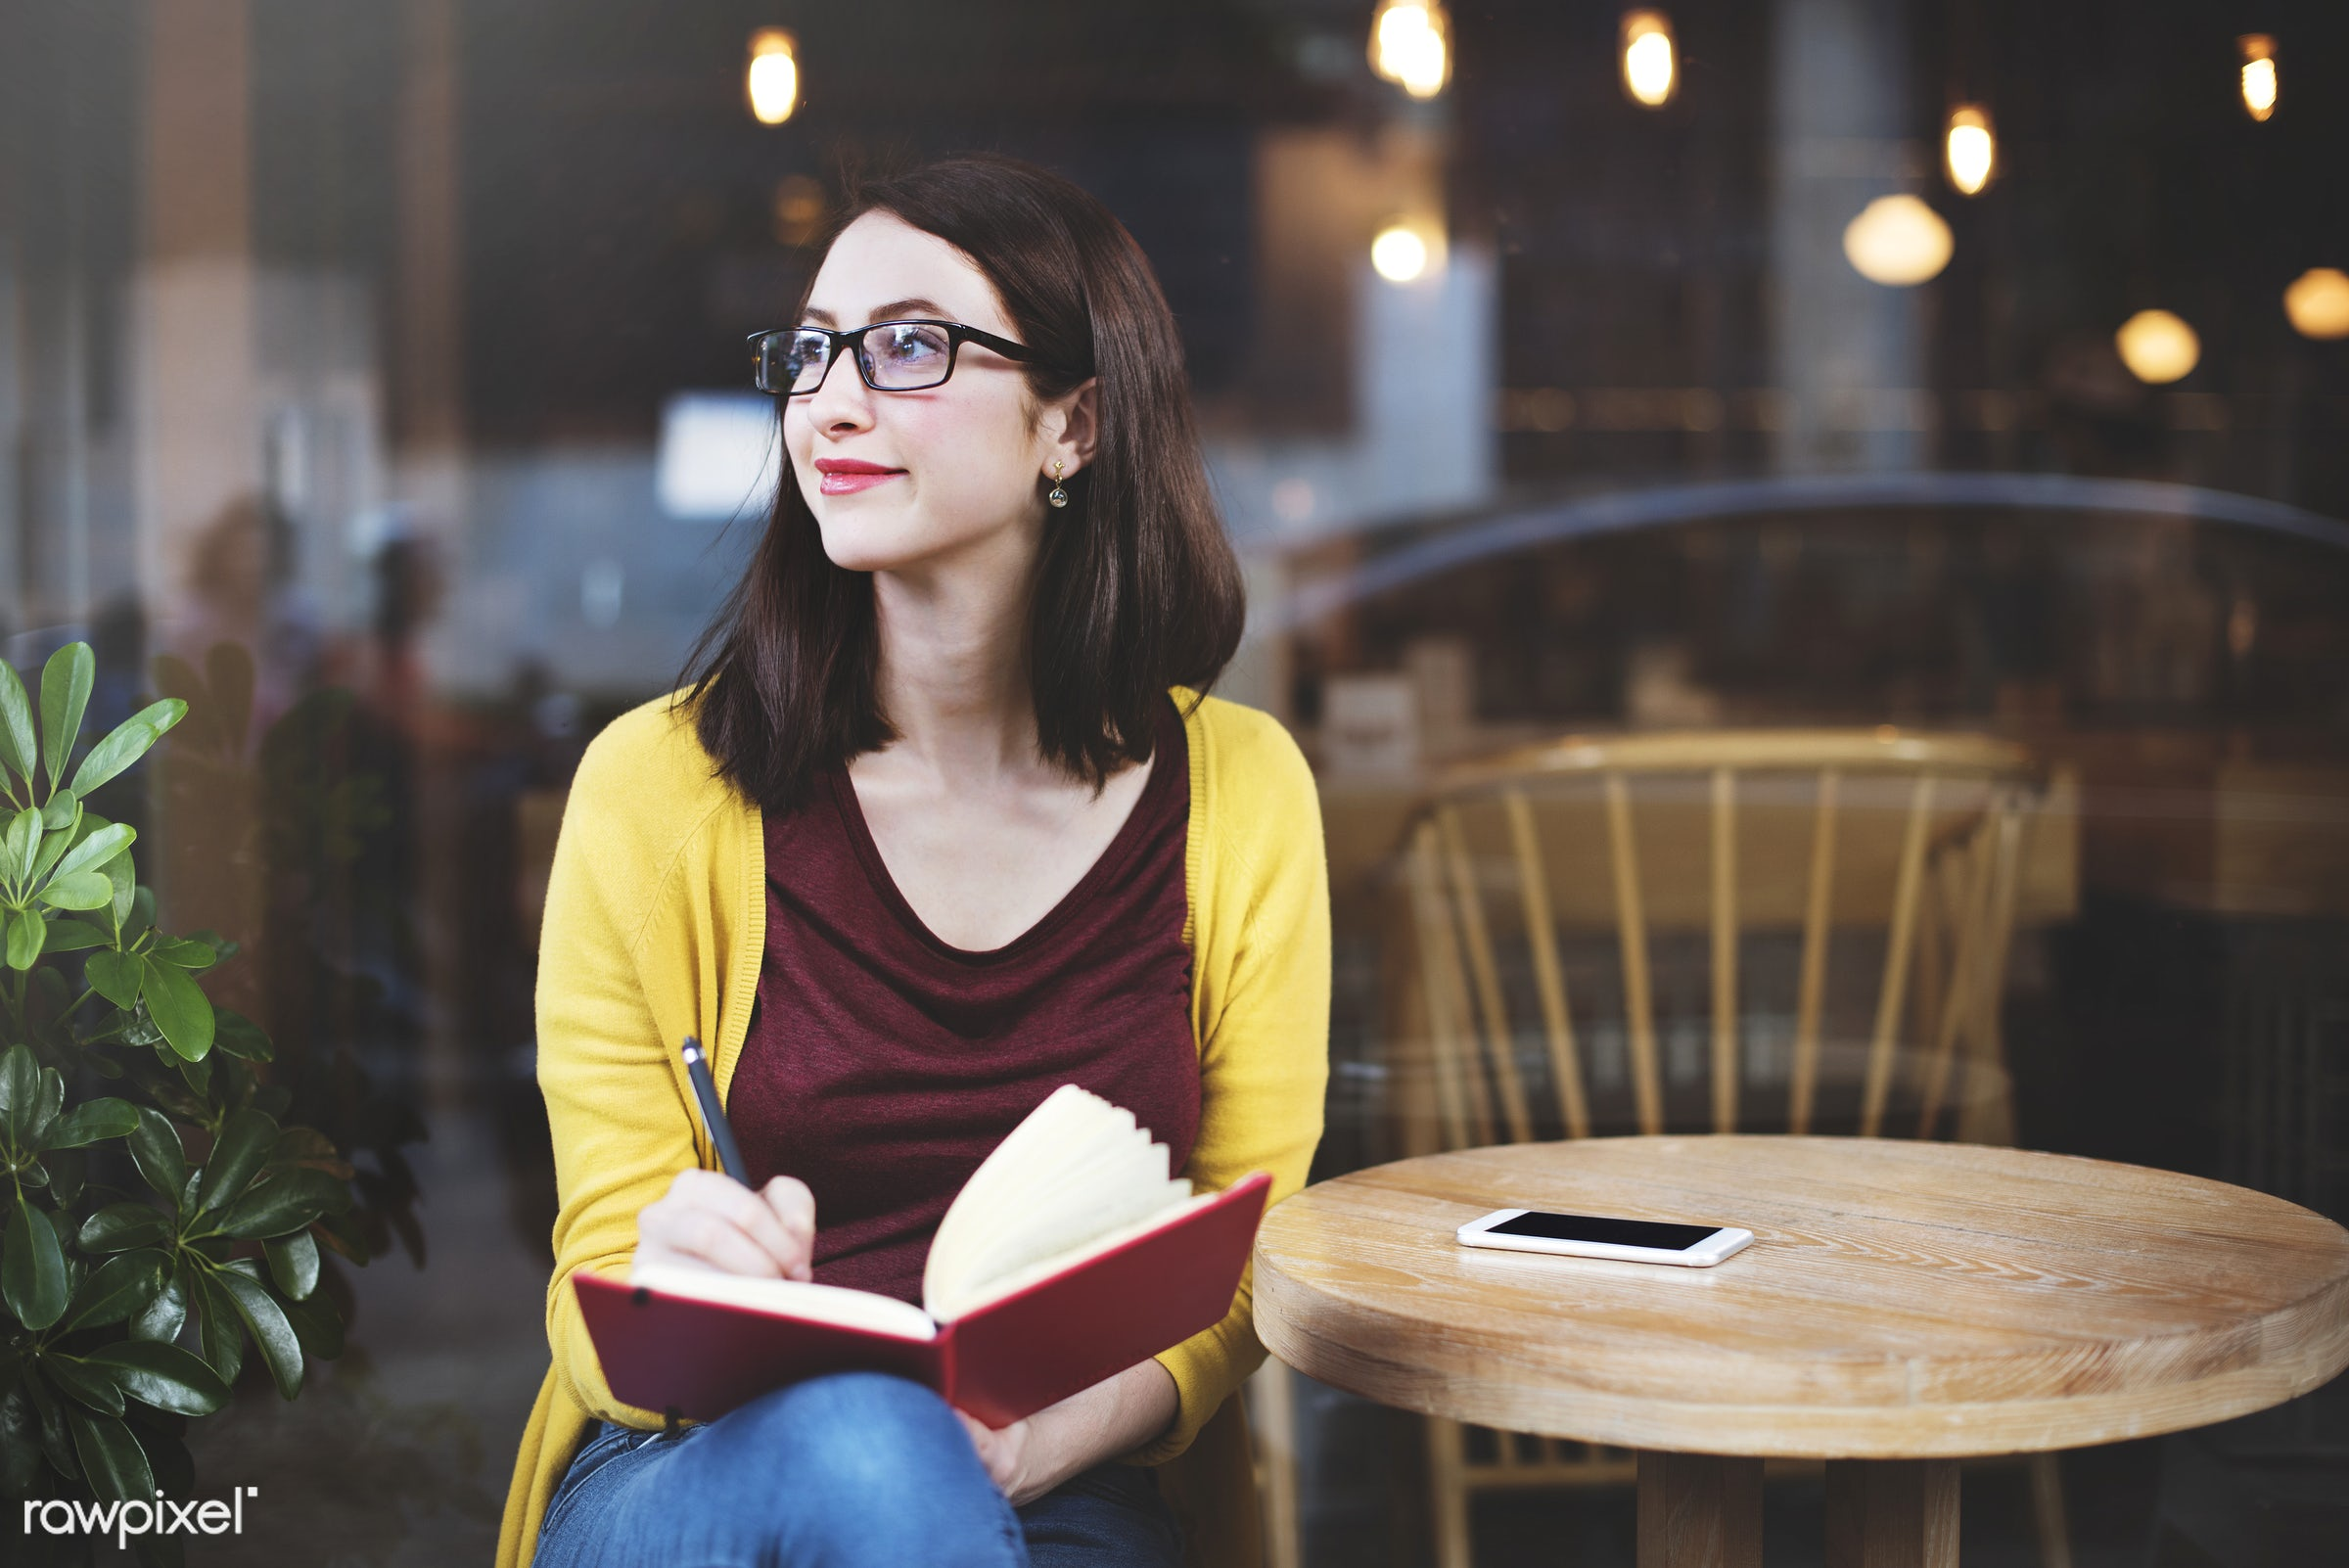 lifestyles, adult, alone, book, cafe, casual, college, communication, connection, digital device, education, girl, glasses,...